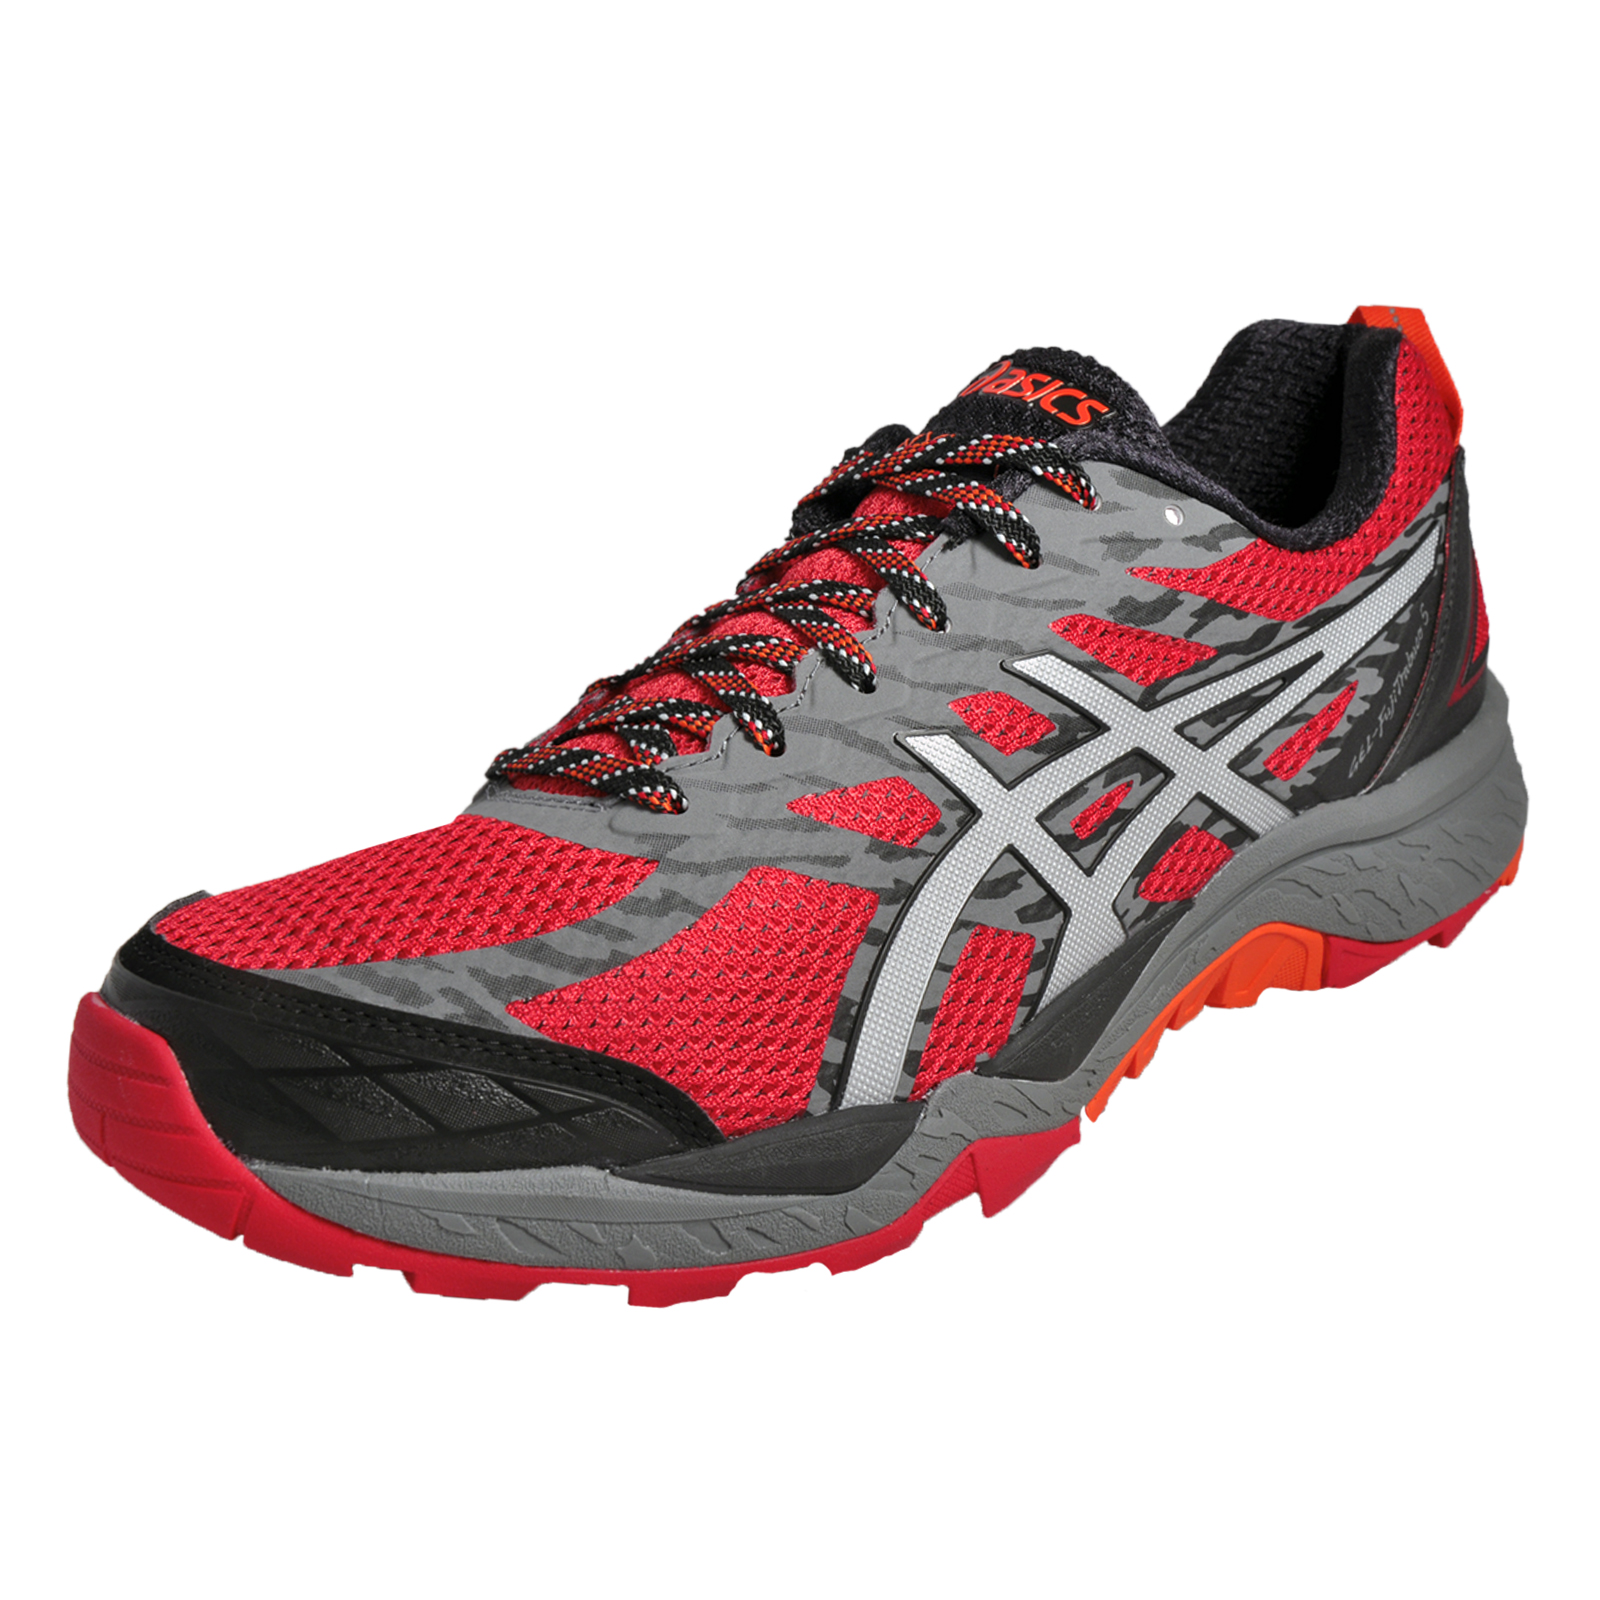 asics gel fuji trabuco 5 mens all terrain premium running shoes trail trainers t ebay. Black Bedroom Furniture Sets. Home Design Ideas